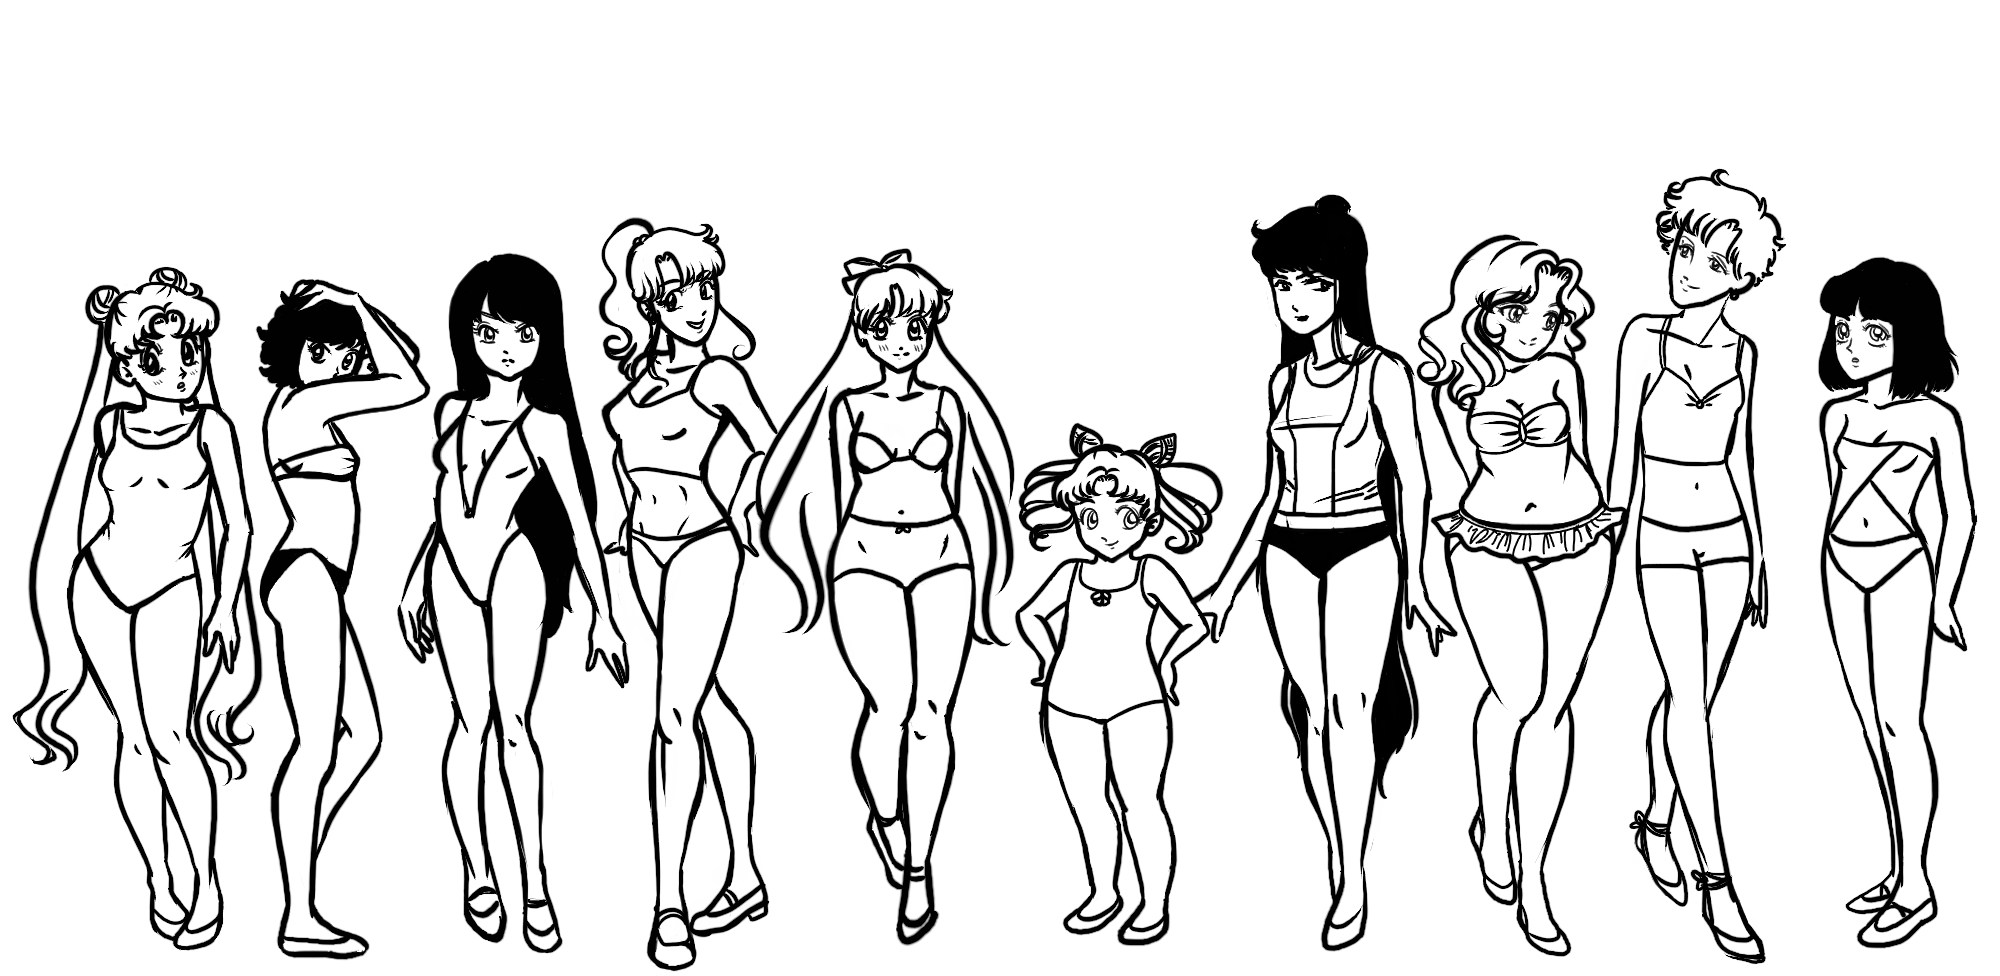 2000x976 Sailor Body Types By Karynironsides